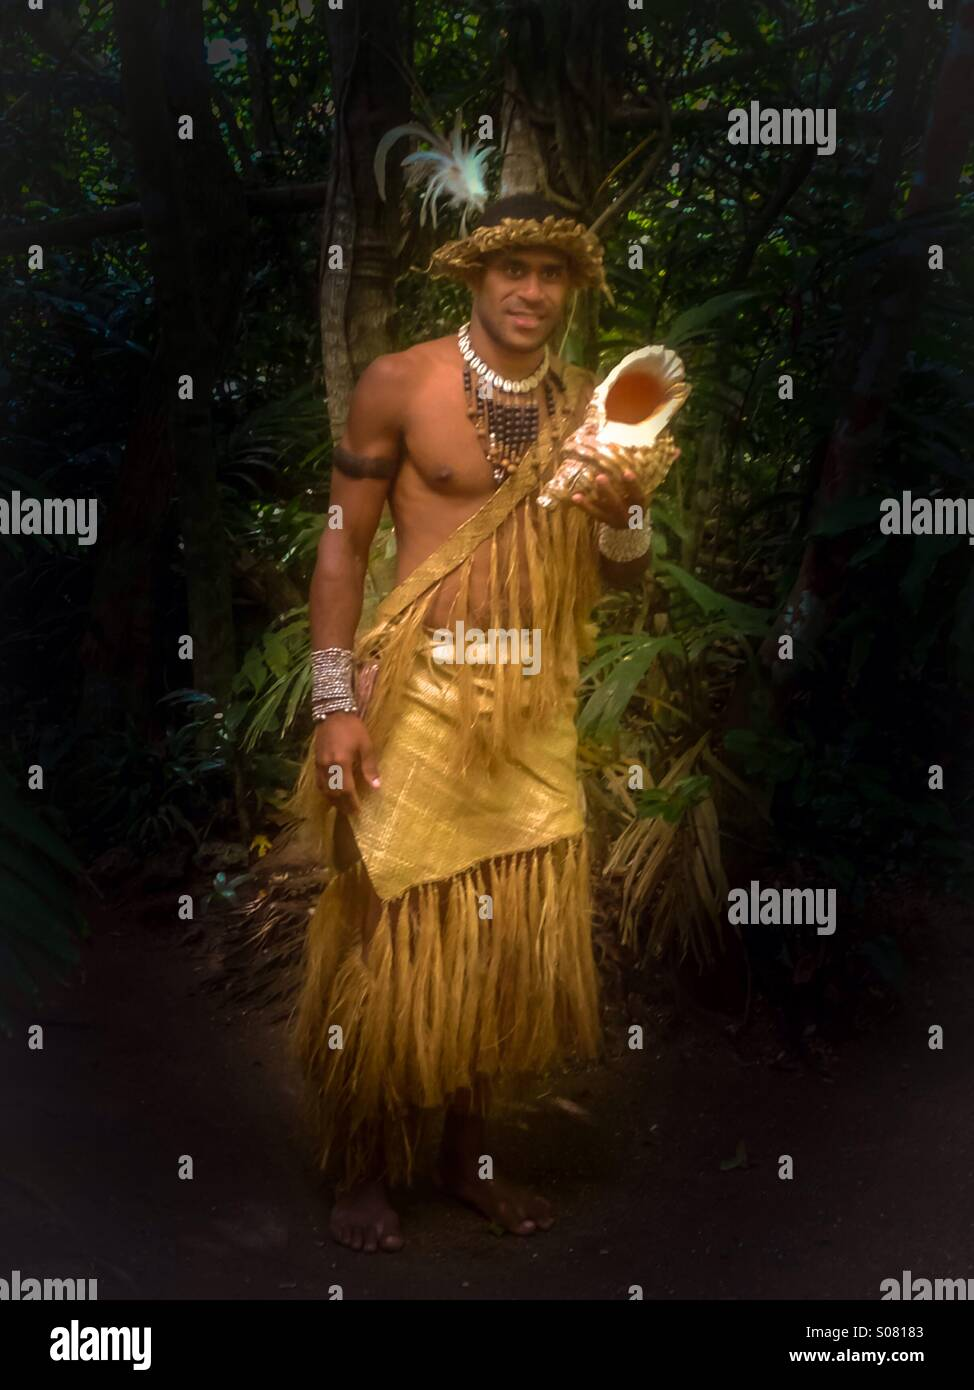 Native warrior in Vanuatu in traditional dress holding a Conch shell - Stock Image